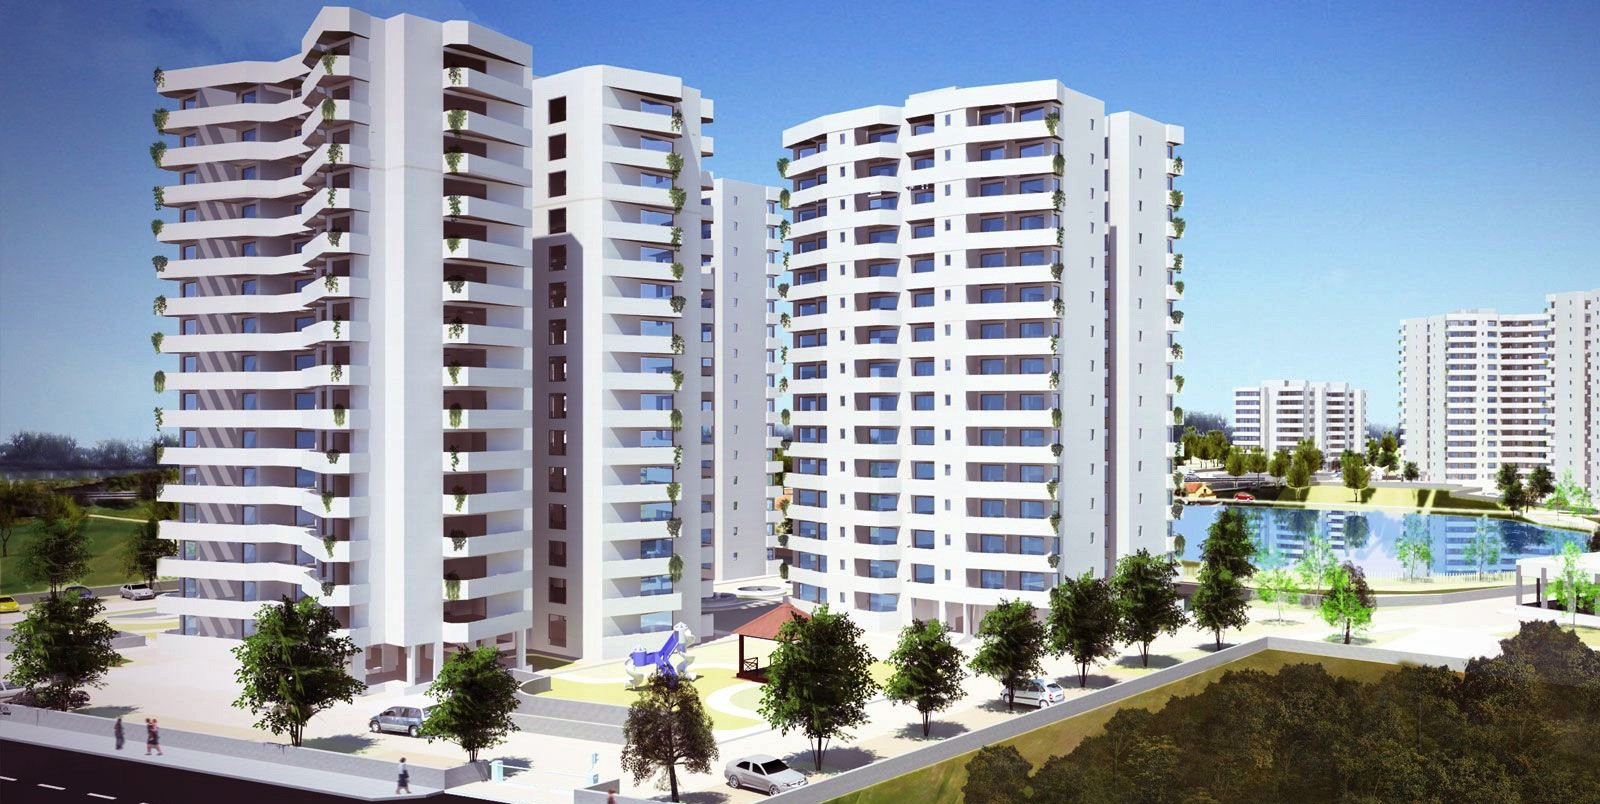 Grab an opportunity to own a flat in Delhi at an affordable